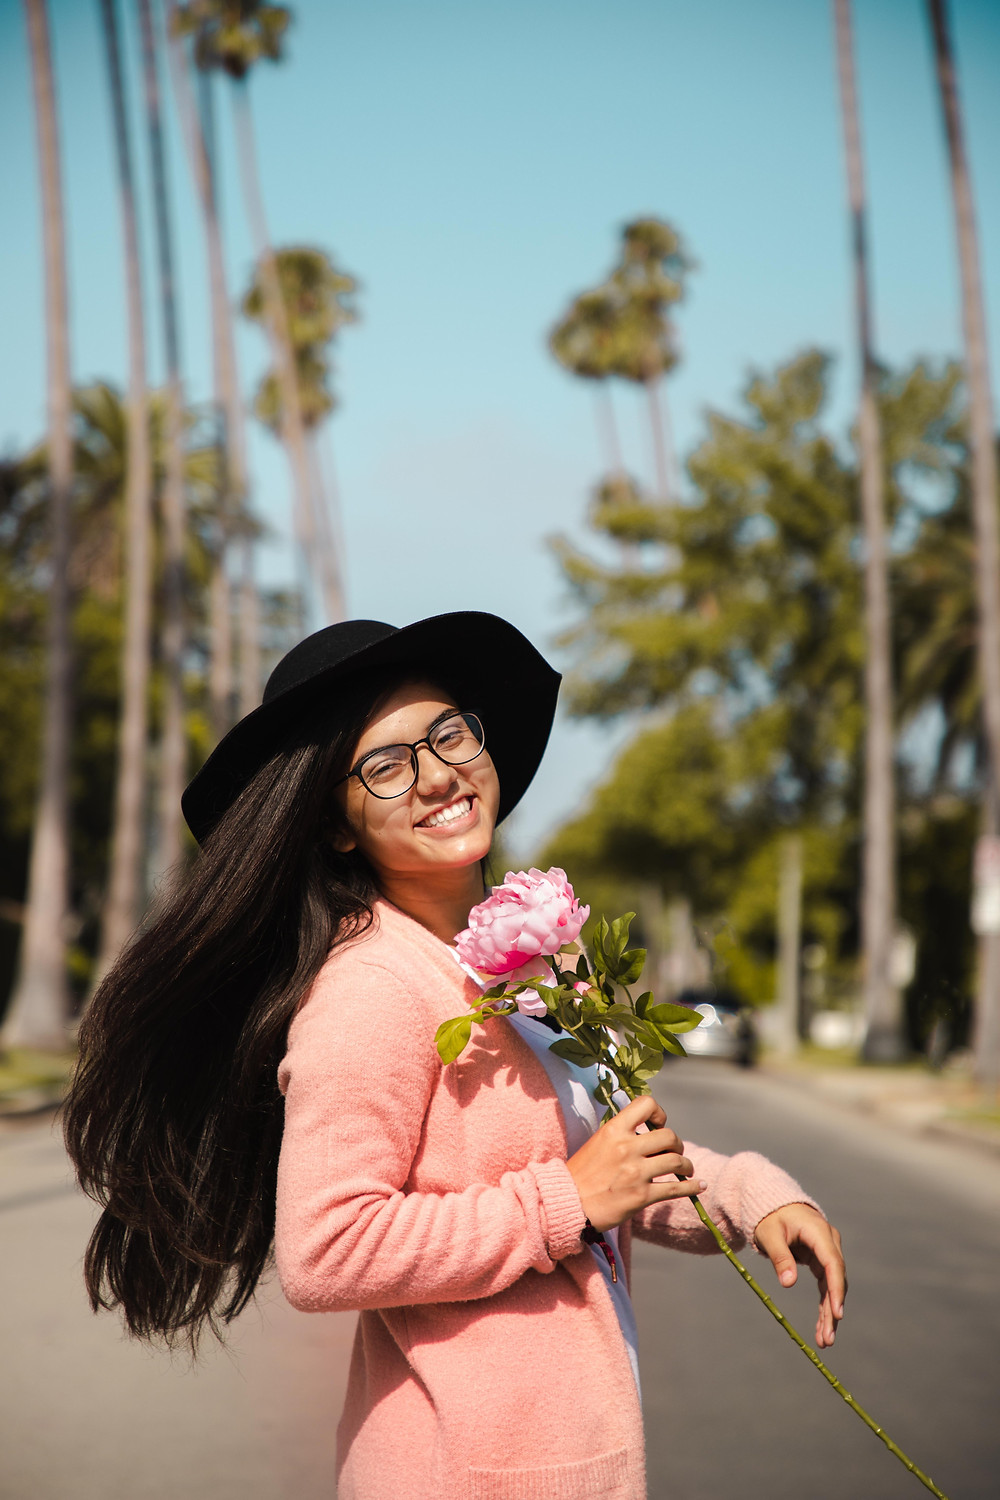 Young women wearing a pink sweater holds a pink flowers in the middle of a sunny street